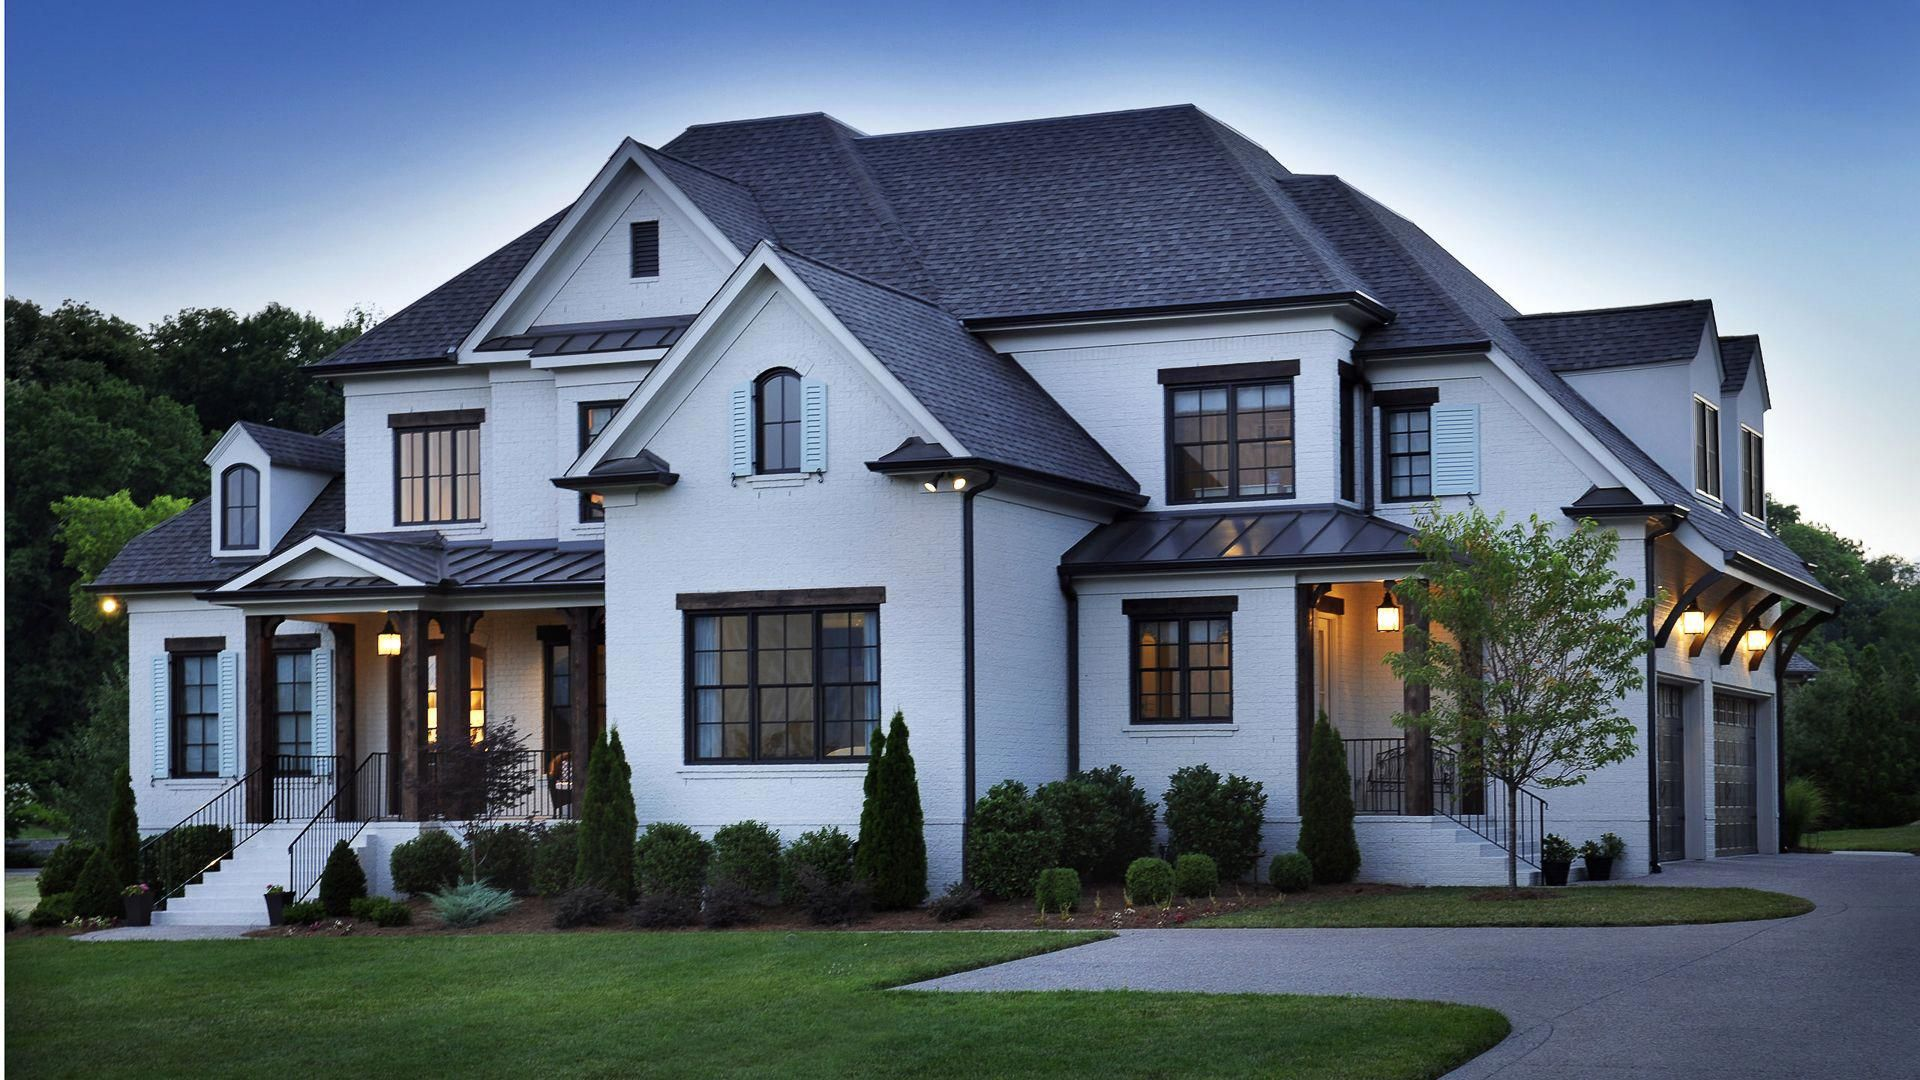 Front Elevation Dreamhouseexterior Dream House Plans House Designs Exterior Luxury Homes Dream Houses Dream house images hd wallpaper